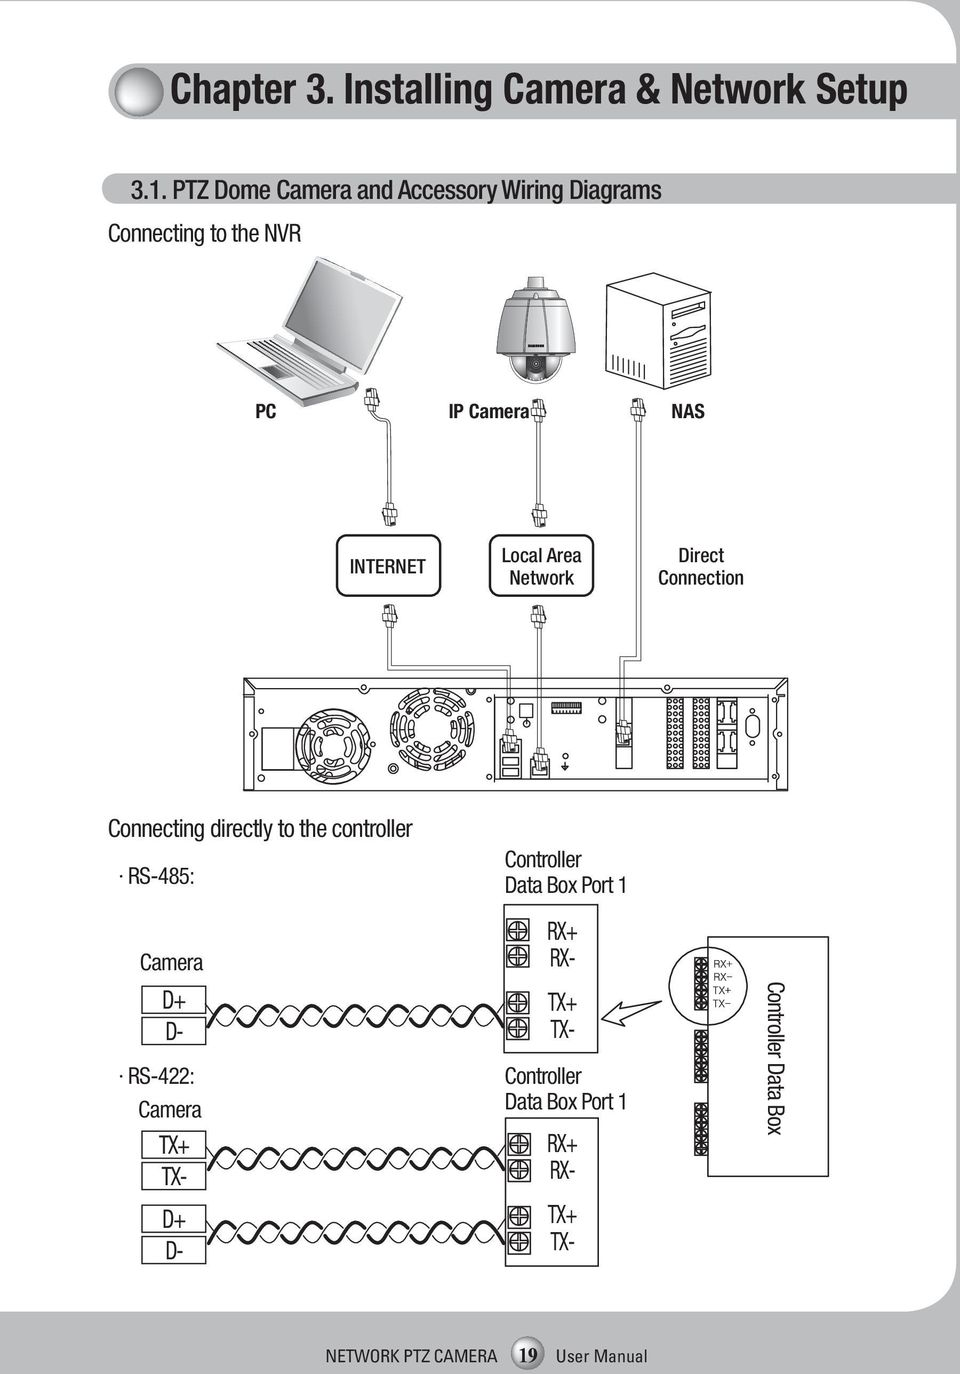 Network Ptz Camera User Manual Snp 3370th 3301h Pdf Panasonic Wiring Diagram Local Area Direct Connection Connecting Directly To The Controller Rs 485